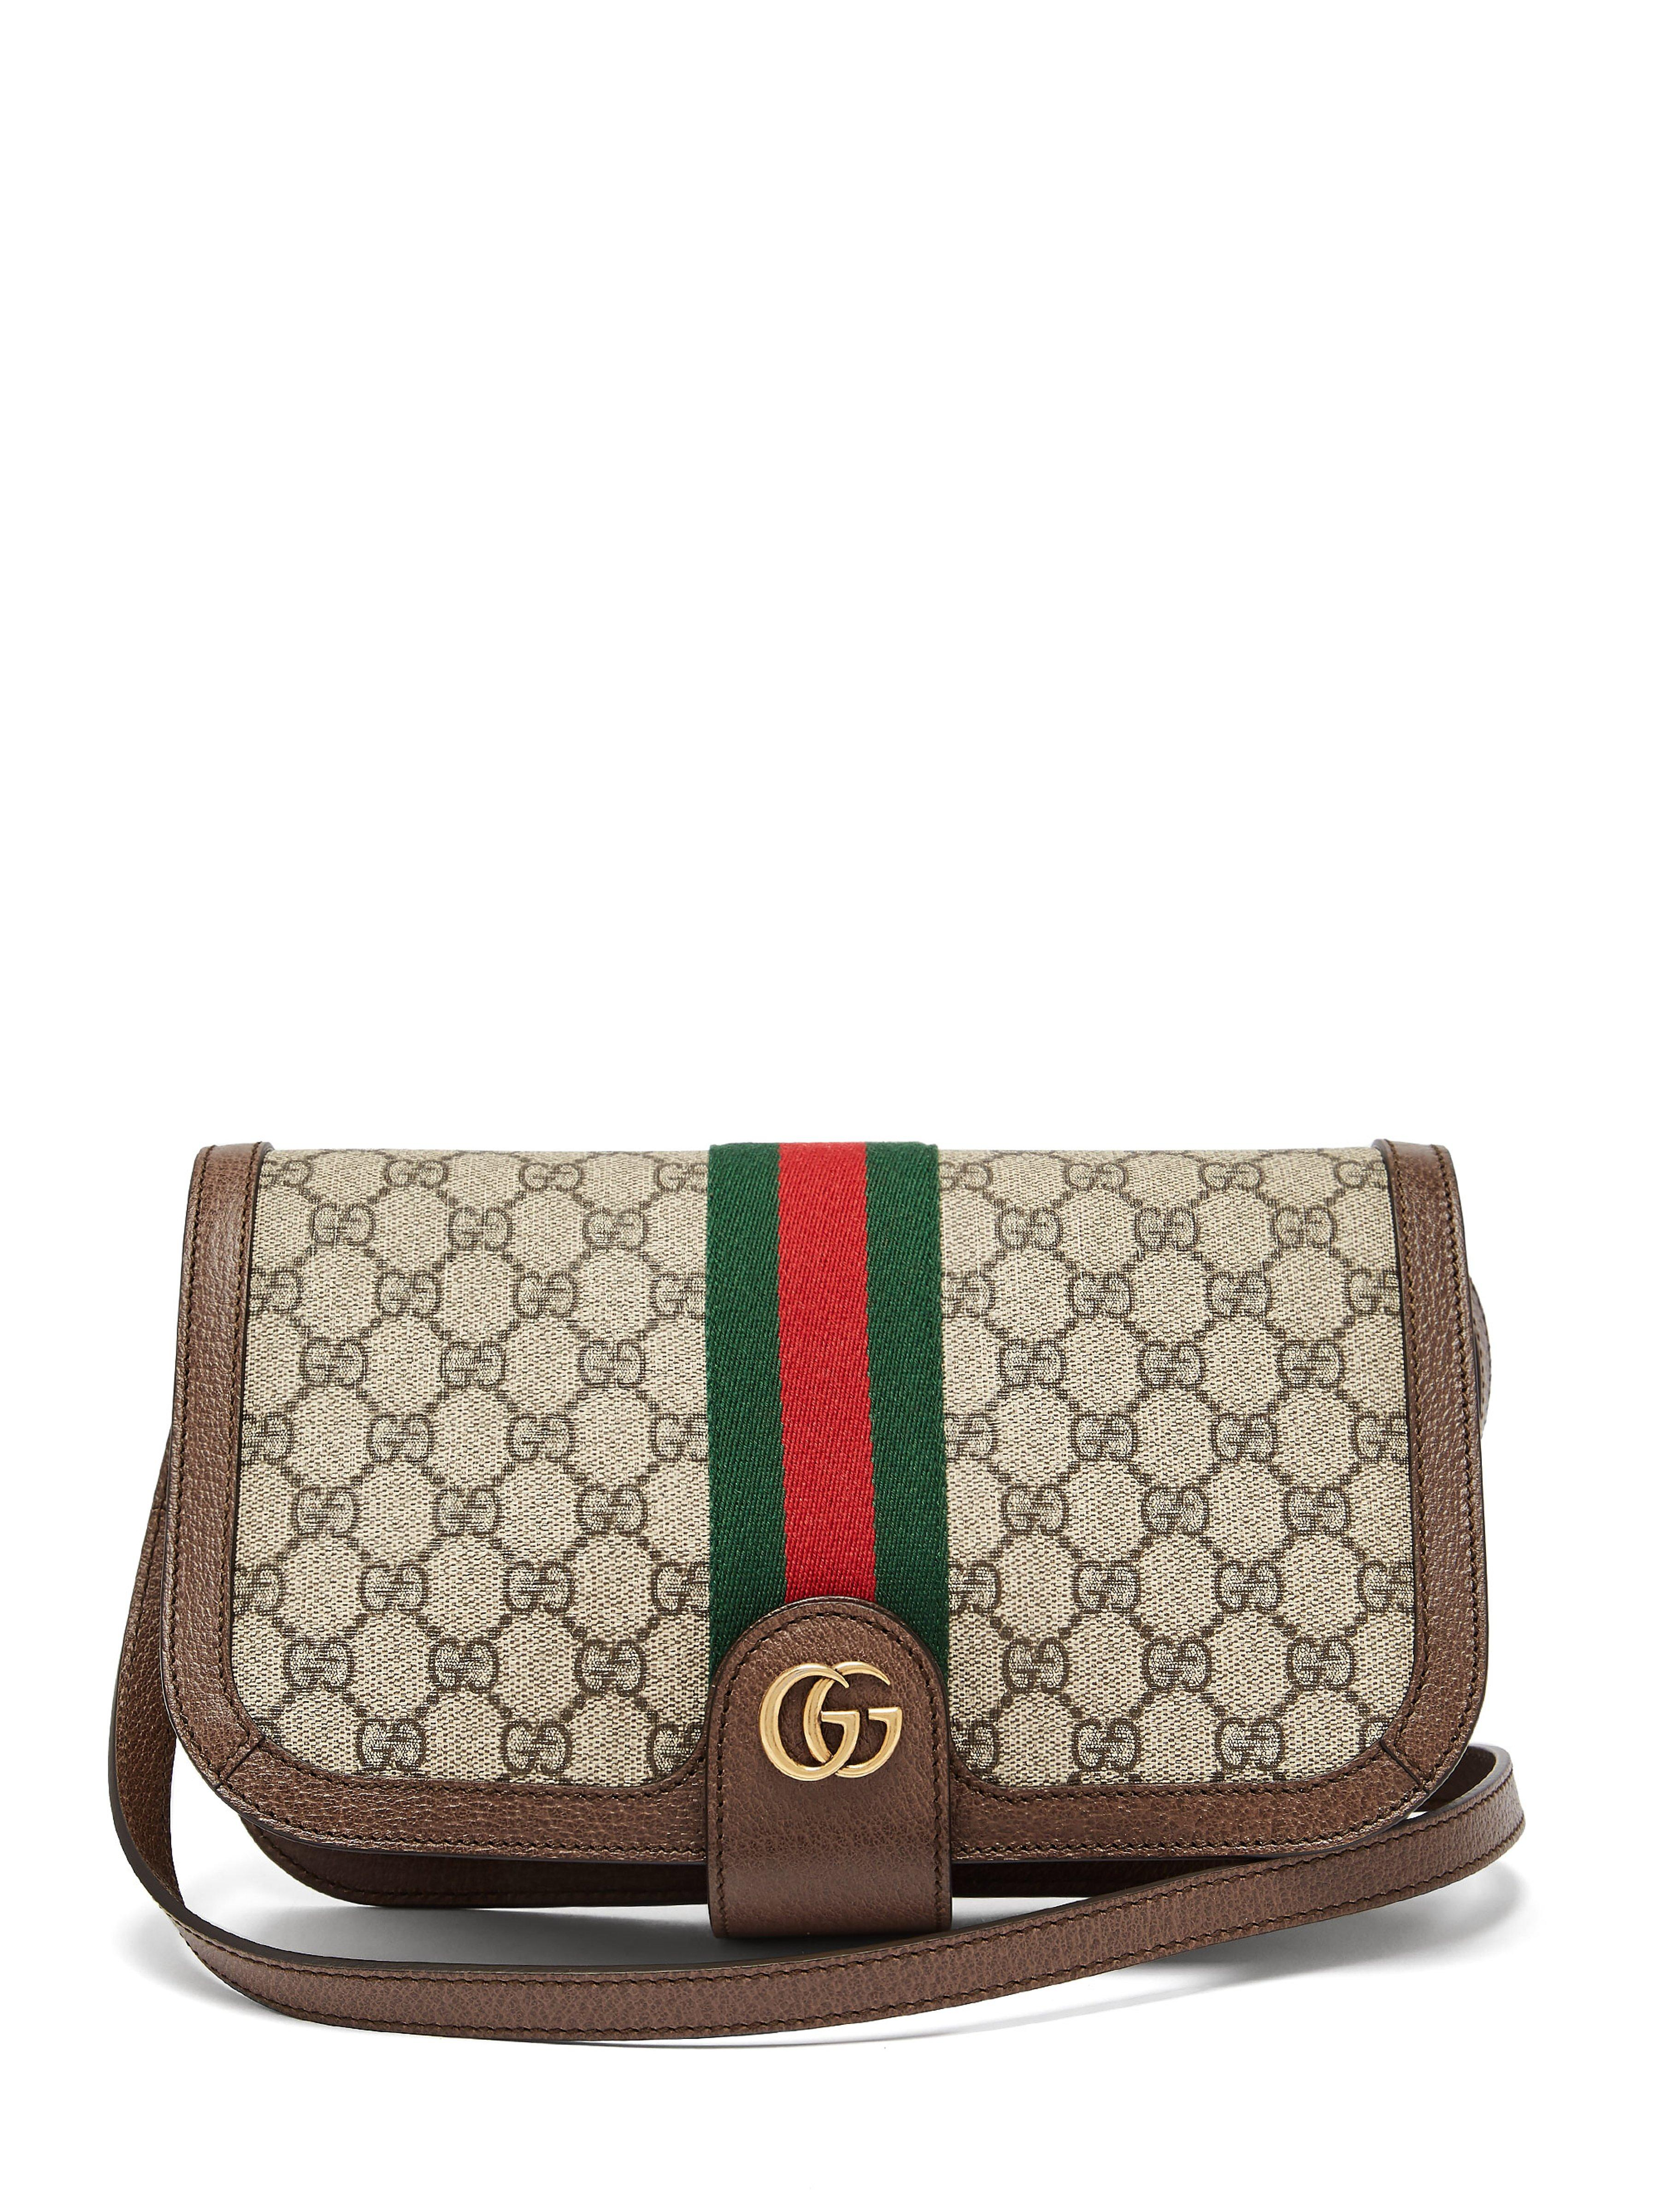 062b2db8010 Gucci Ophidia Gg Supreme Shoulder Bag in Gray - Lyst